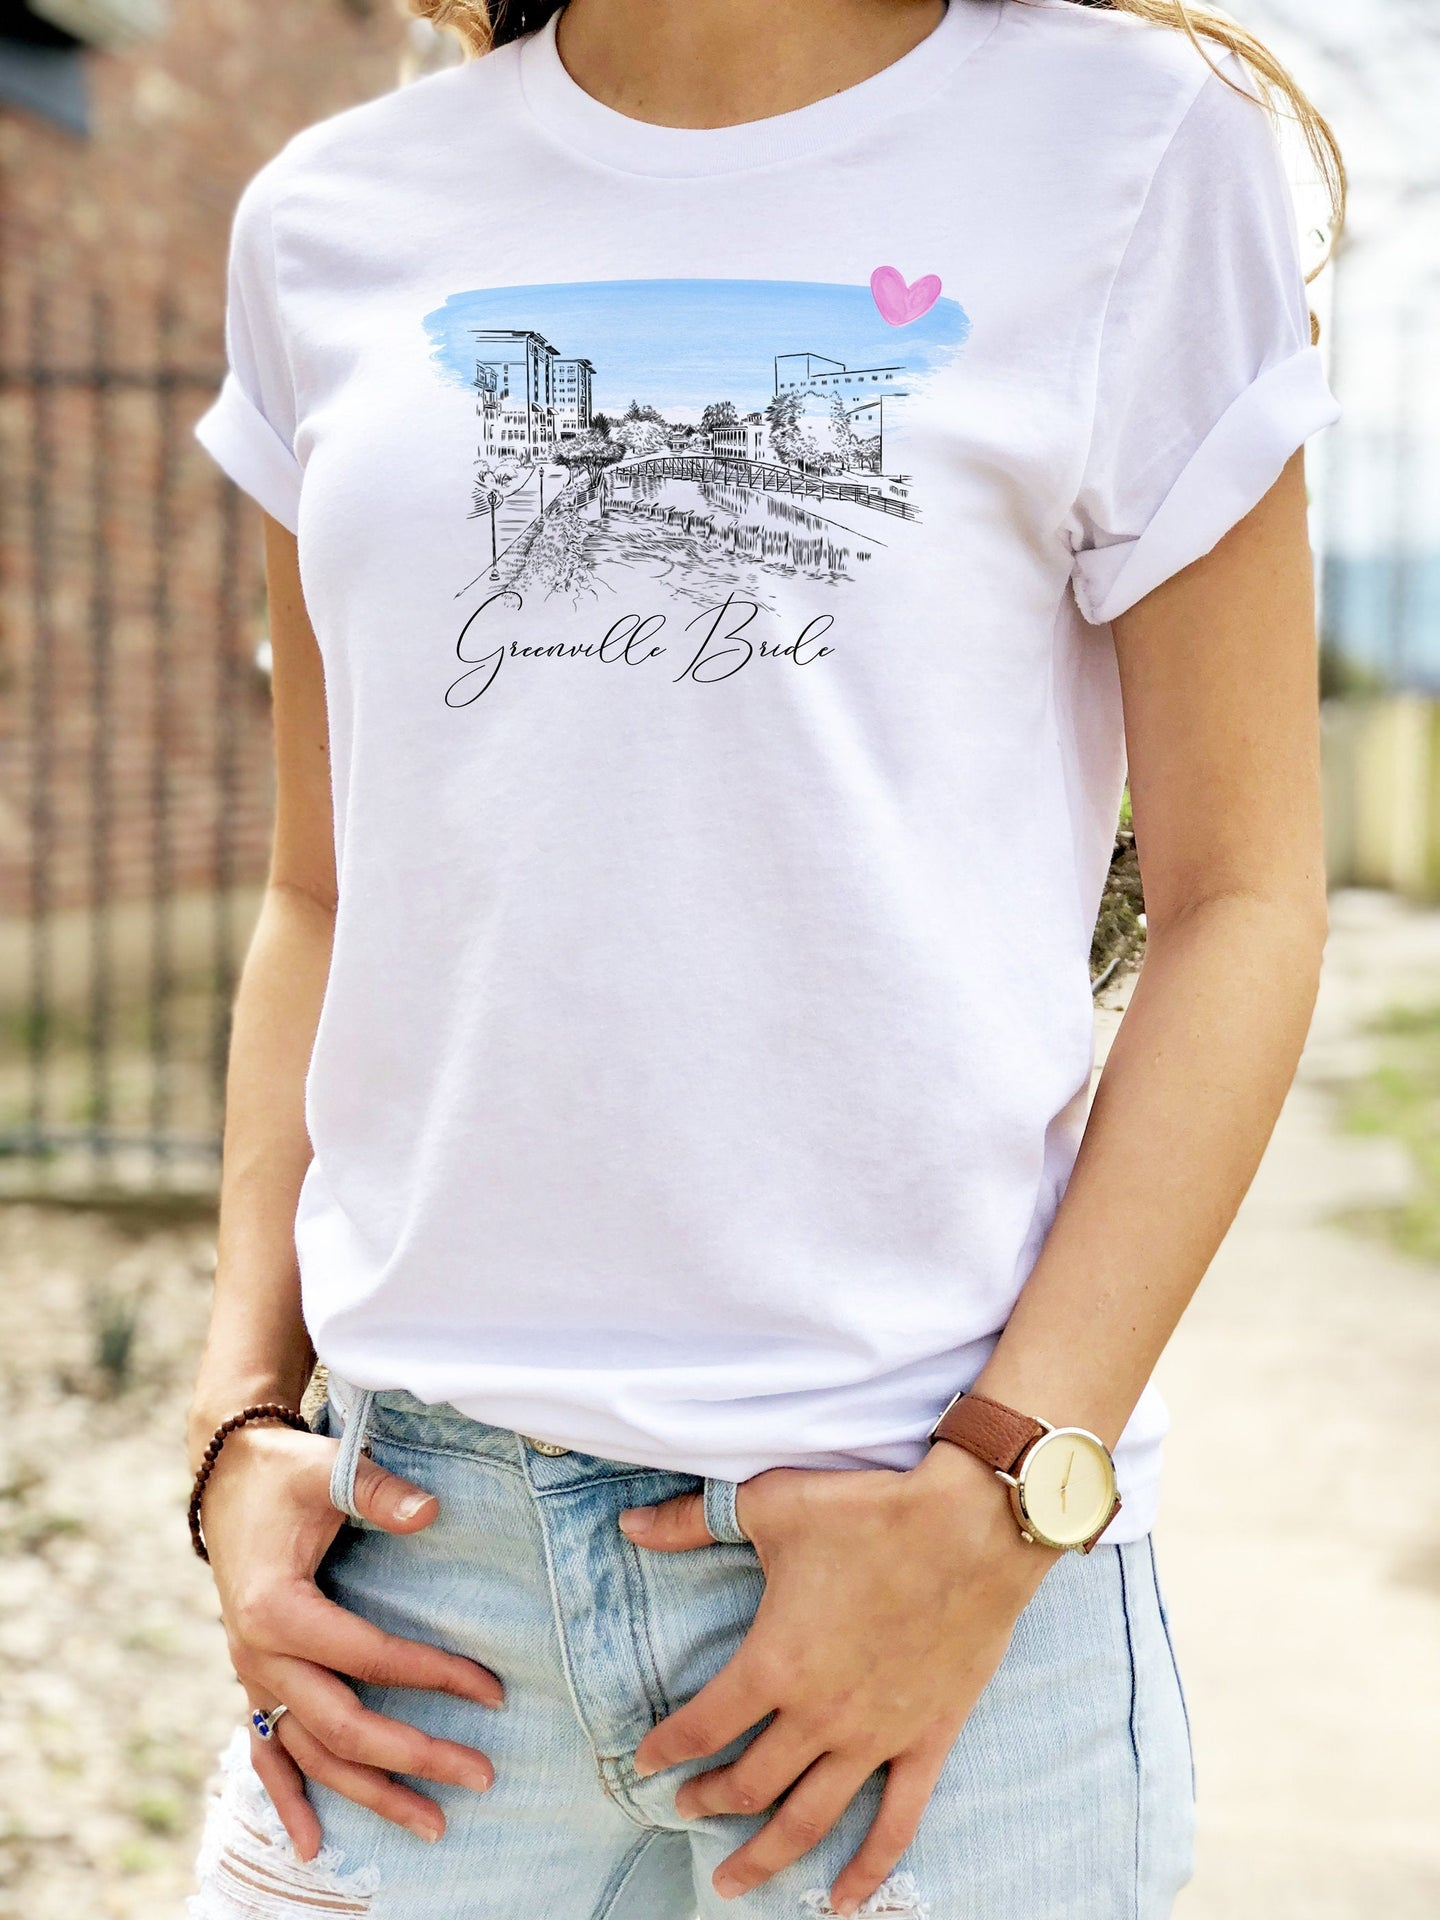 Greenville Bride Shirt, T-Shirt, Greenville, SC Skyline, Bride Tee, Wedding Shirt, Bride, Bridal Shower Gift, Bachelorette, Gift, Tee